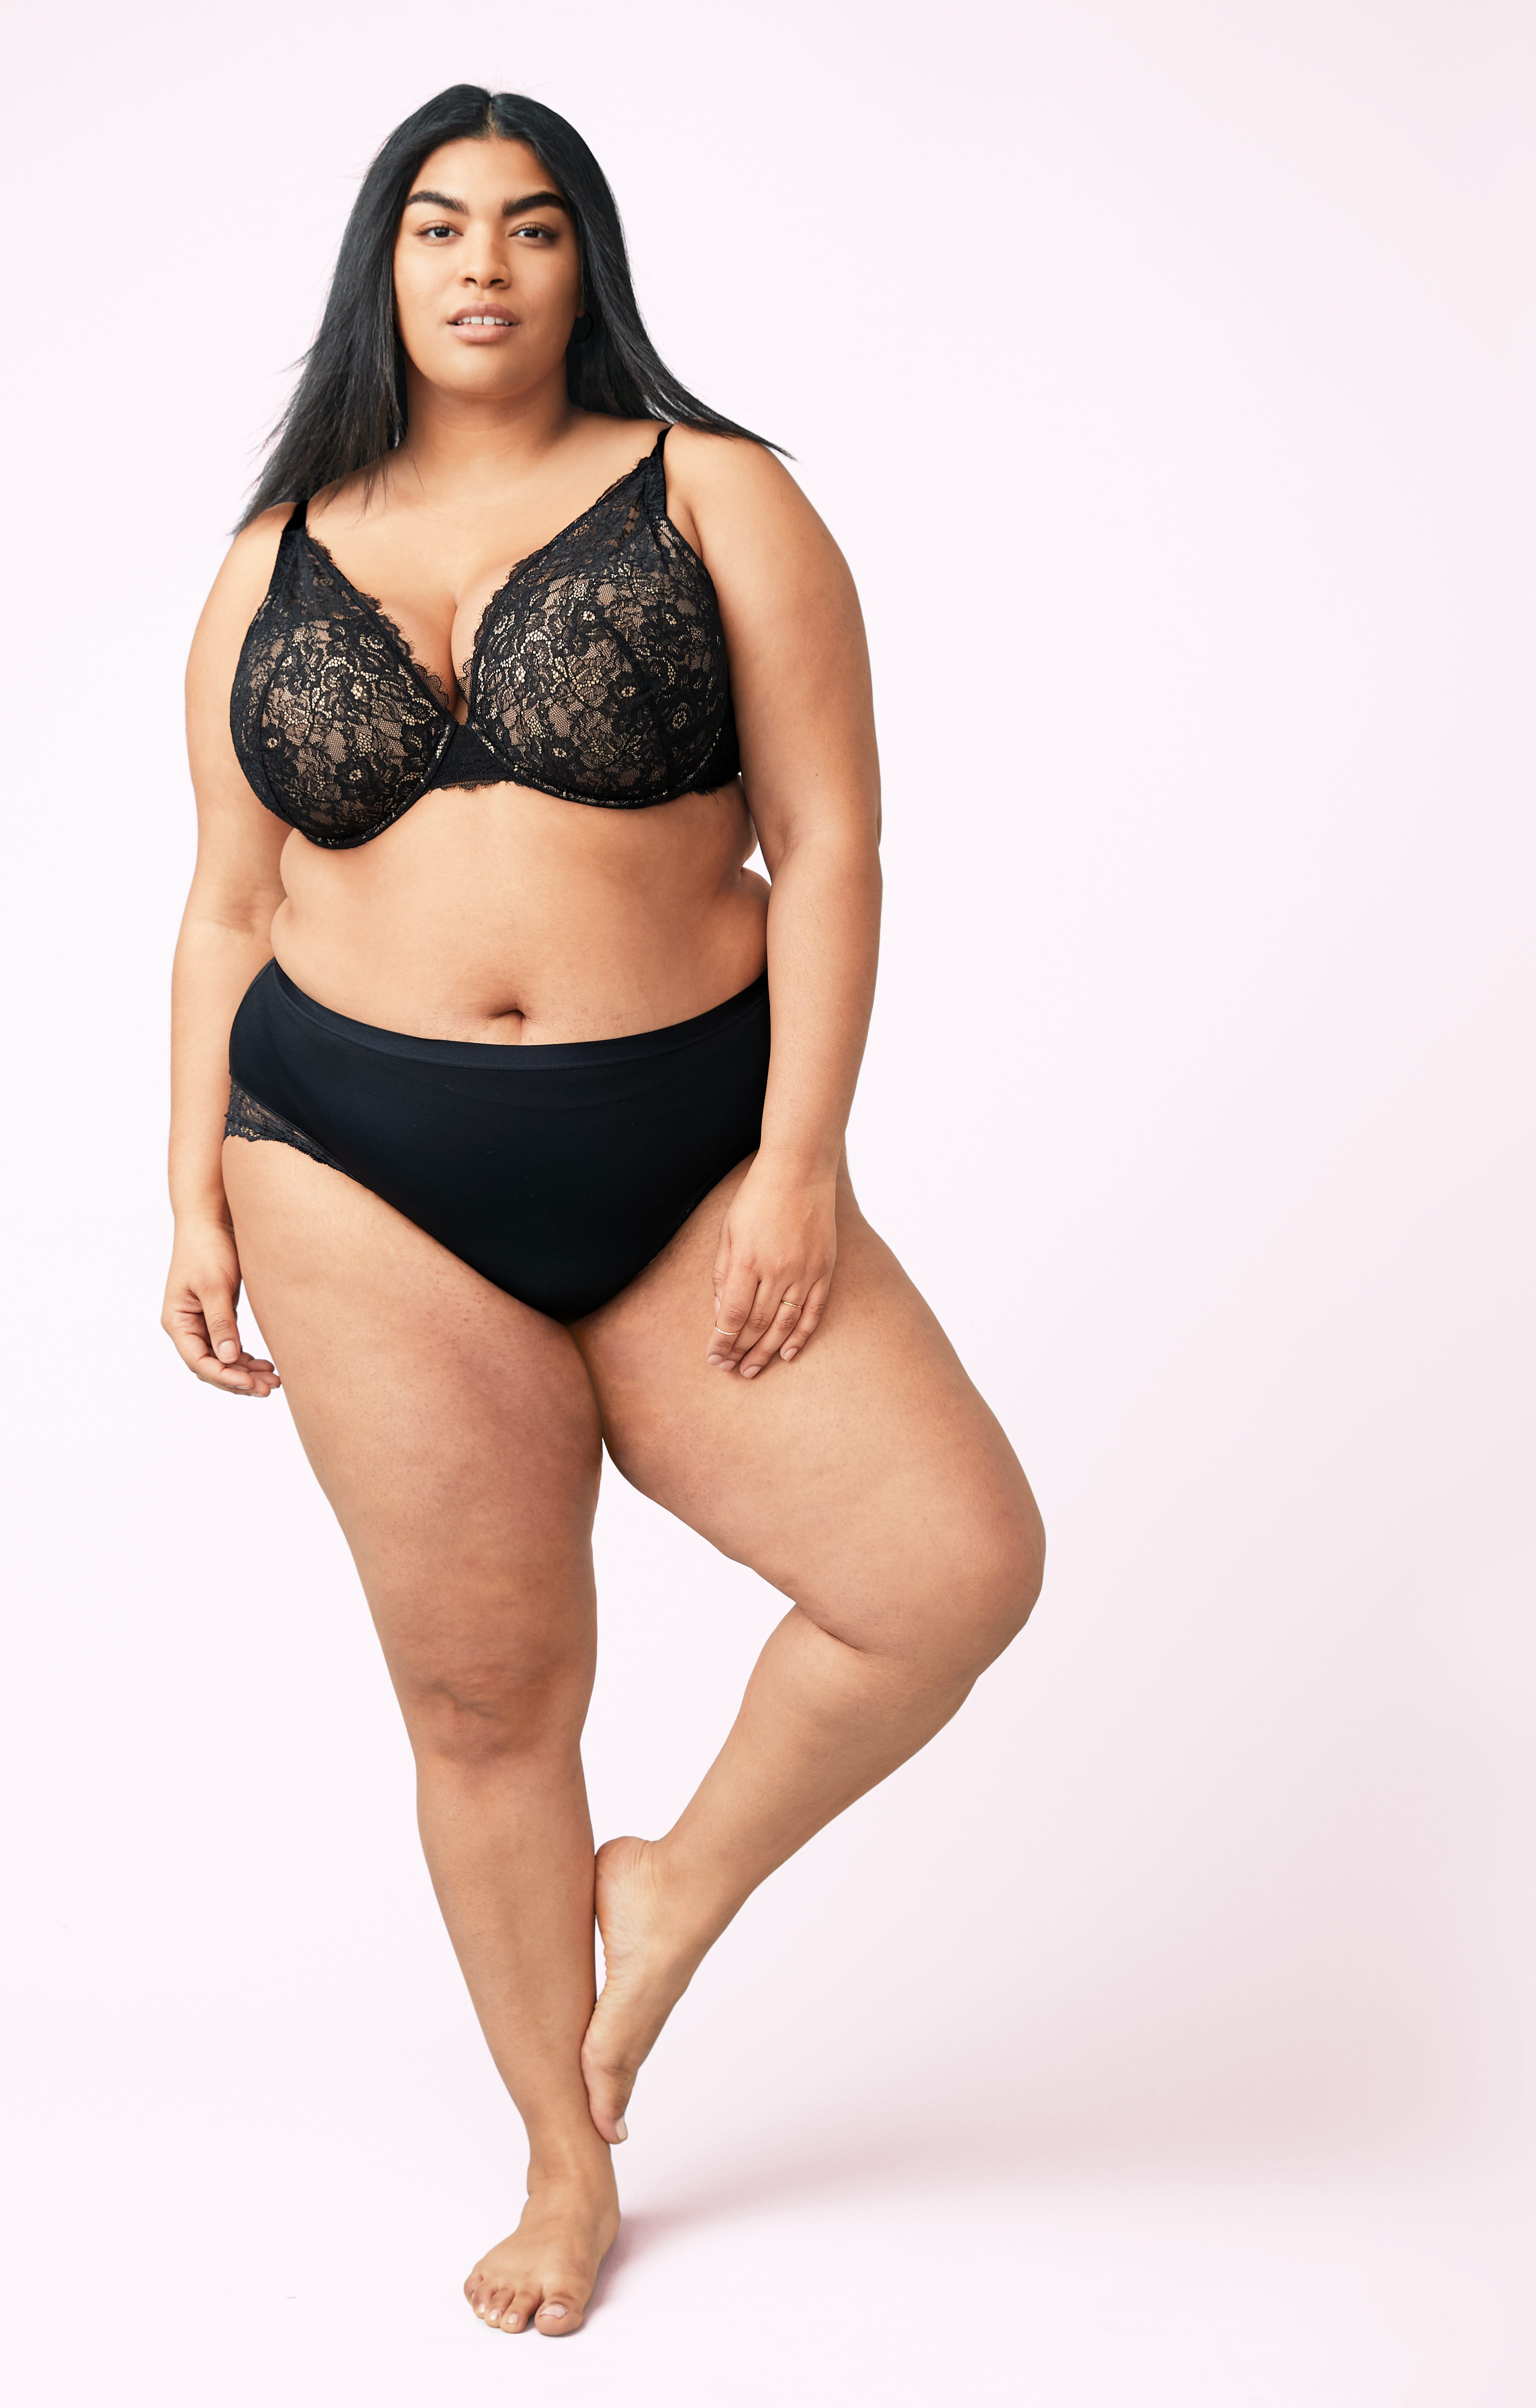 450471a7e94 Target Launches New Lingerie Lines For All Body Sizes